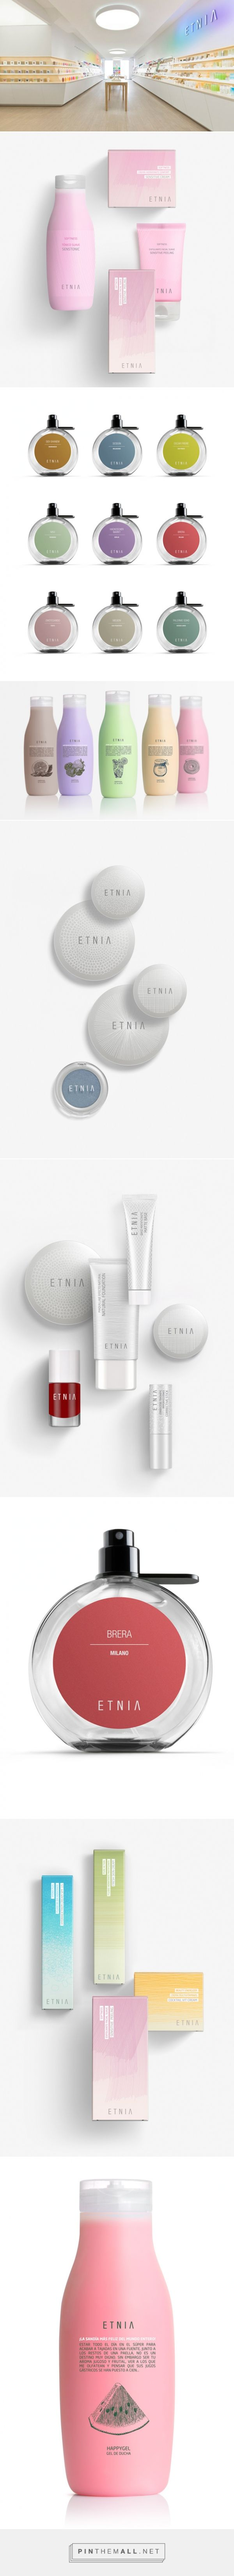 Etnia Cosmetics, un proyecto de diseño global de Lavernia & Cienfuegos not your typical cosmetics packaging curated by Packaging Diva PD